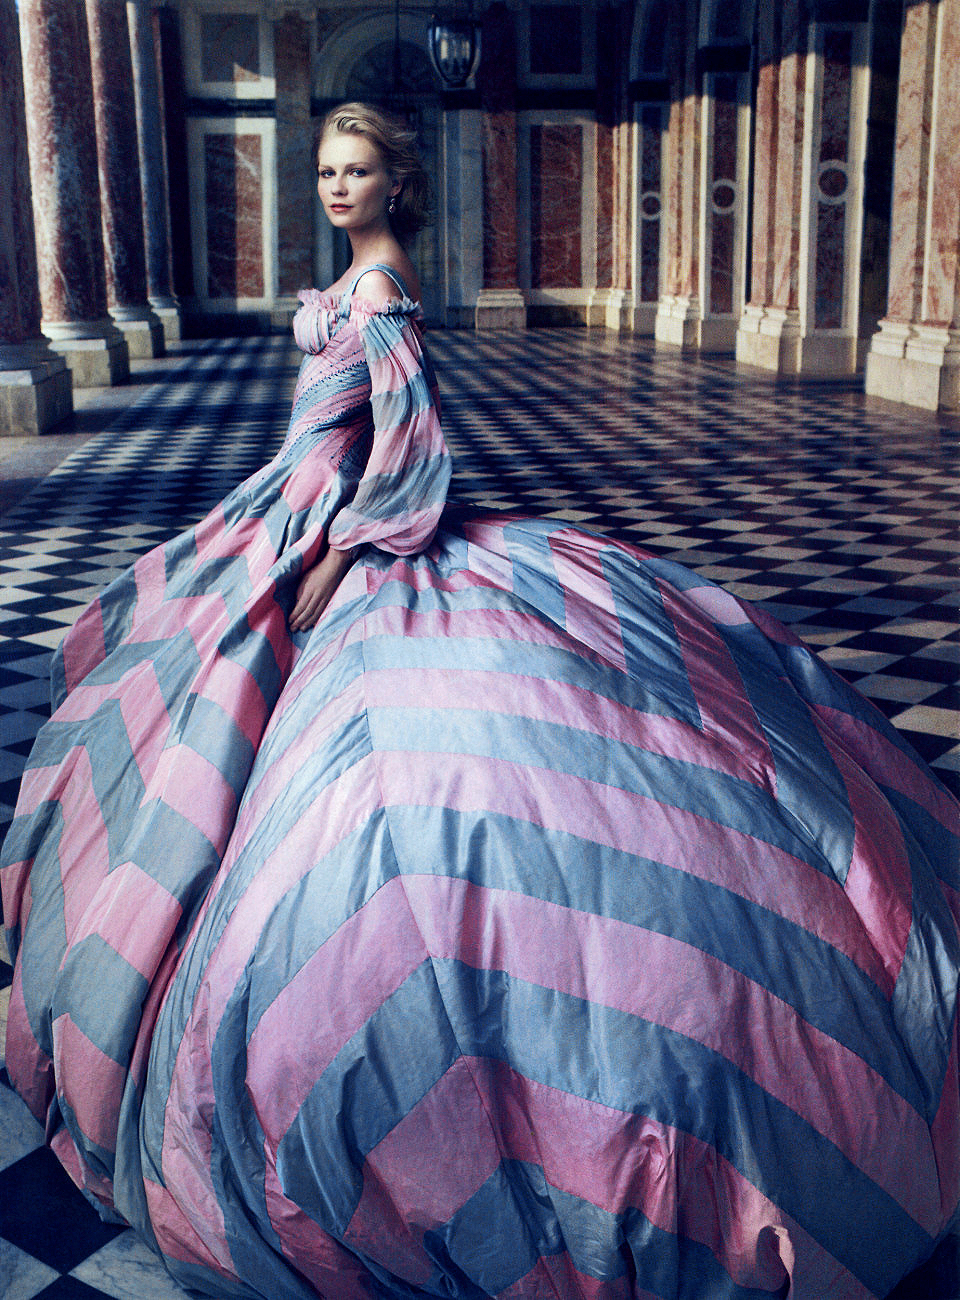 Chanel after coco coup de coeur vogue september 2006 for Haute couture photoshoot